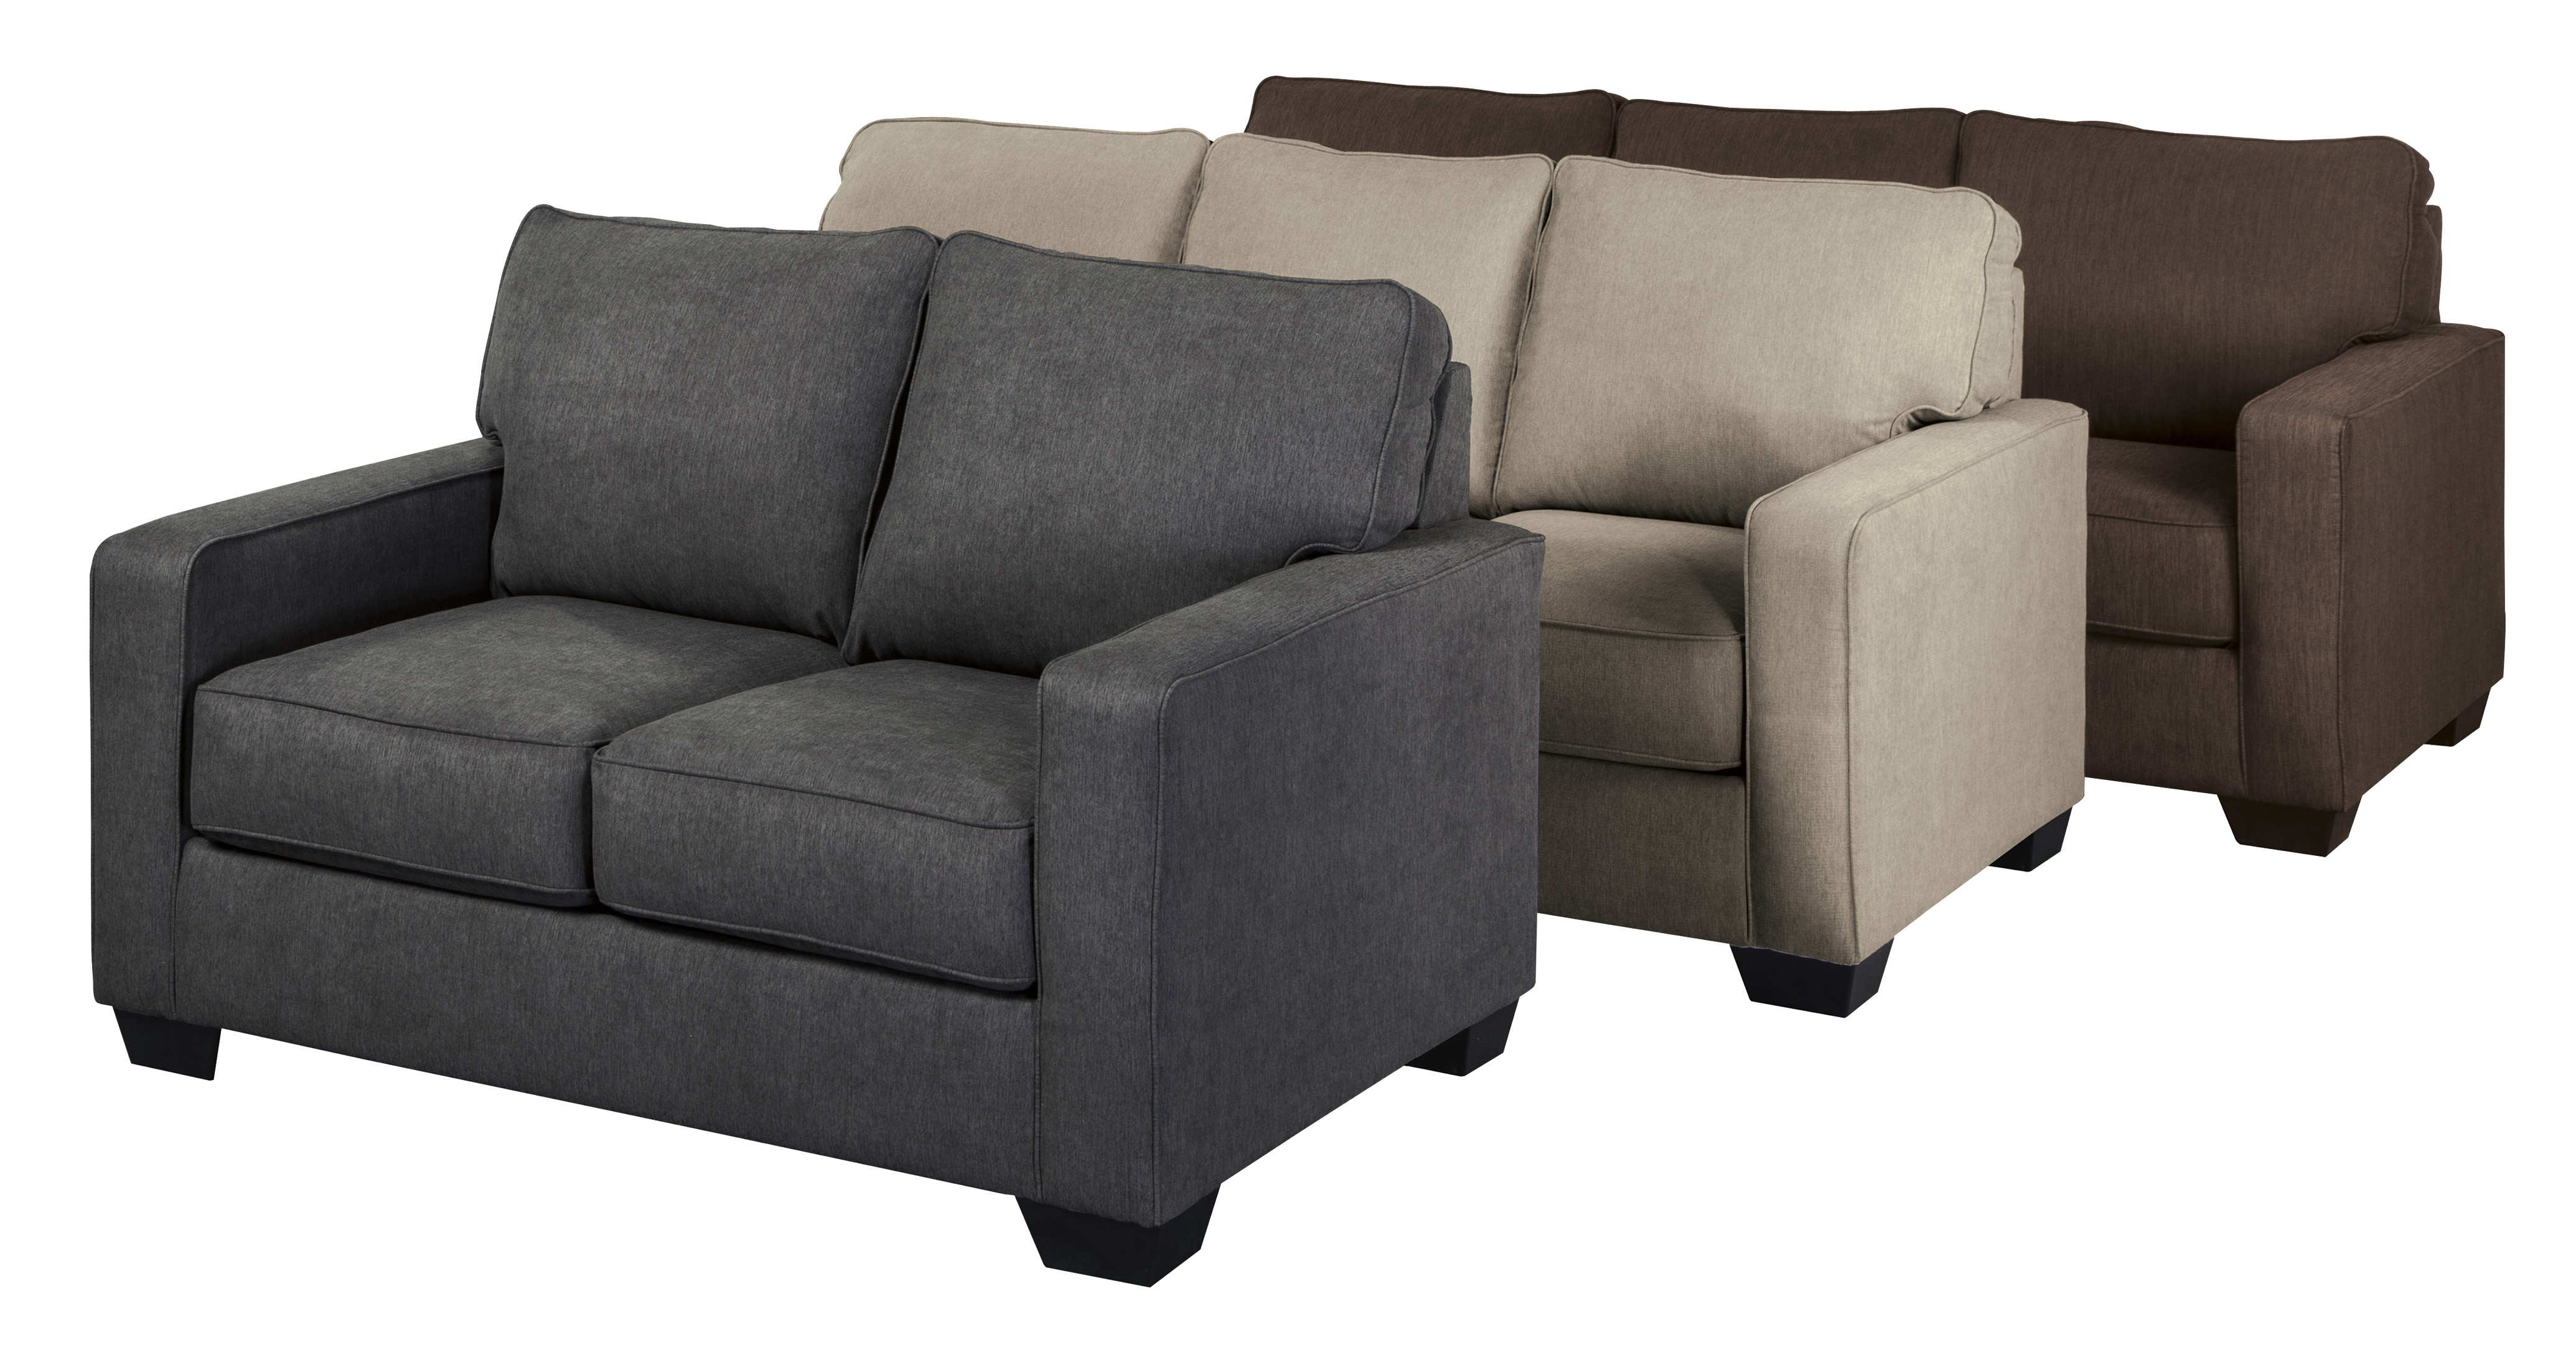 Zeb Memory Foam Sleeper Sofas 35901   Copy